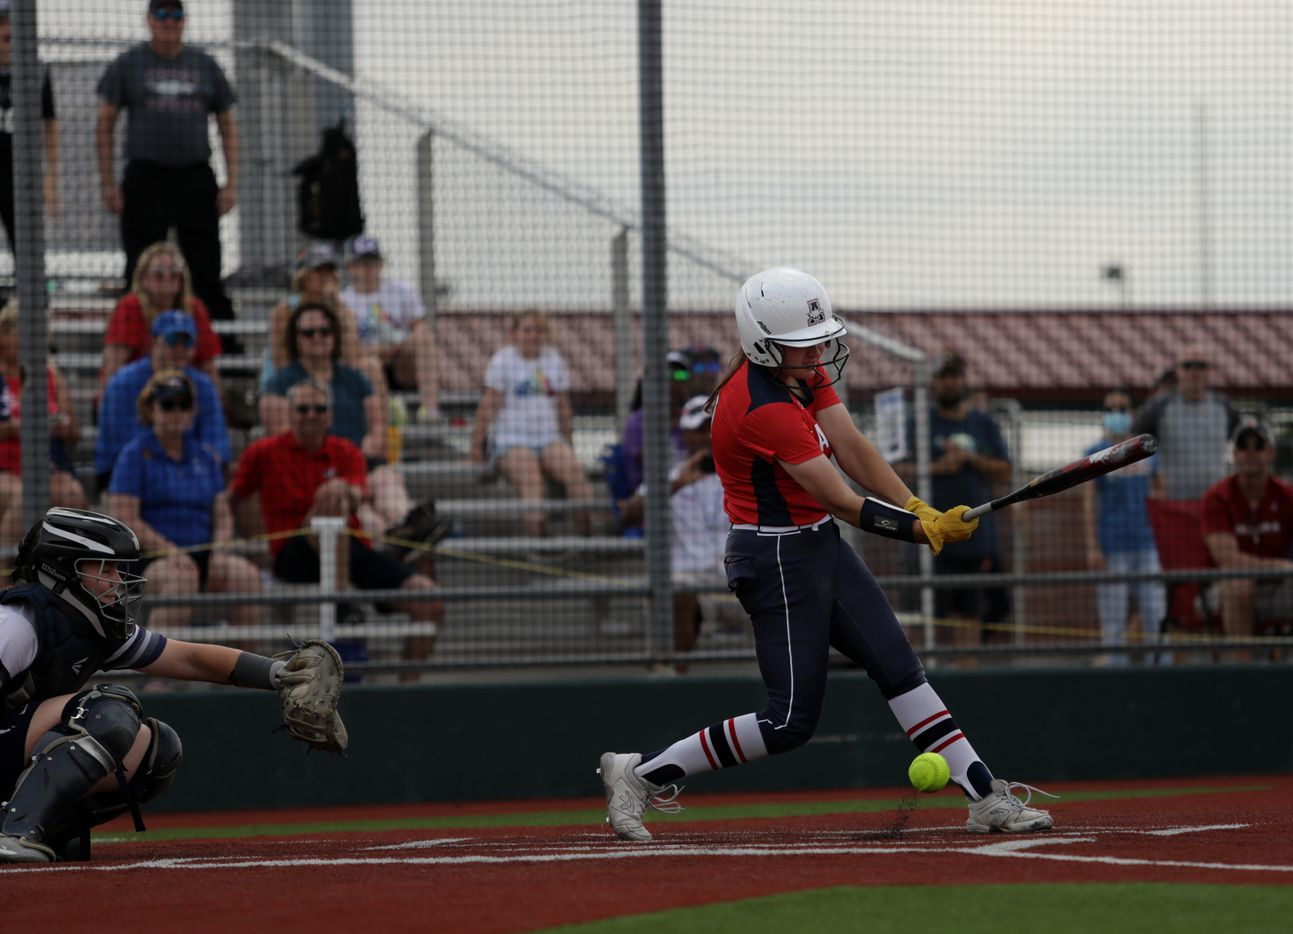 Allen High School player #10, Alexis Telford, hits a foul during a softball playoff game against Flower Mound High School at Allen High School in Allen, TX, on May 15, 2021. (Jason Janik/Special Contributor)